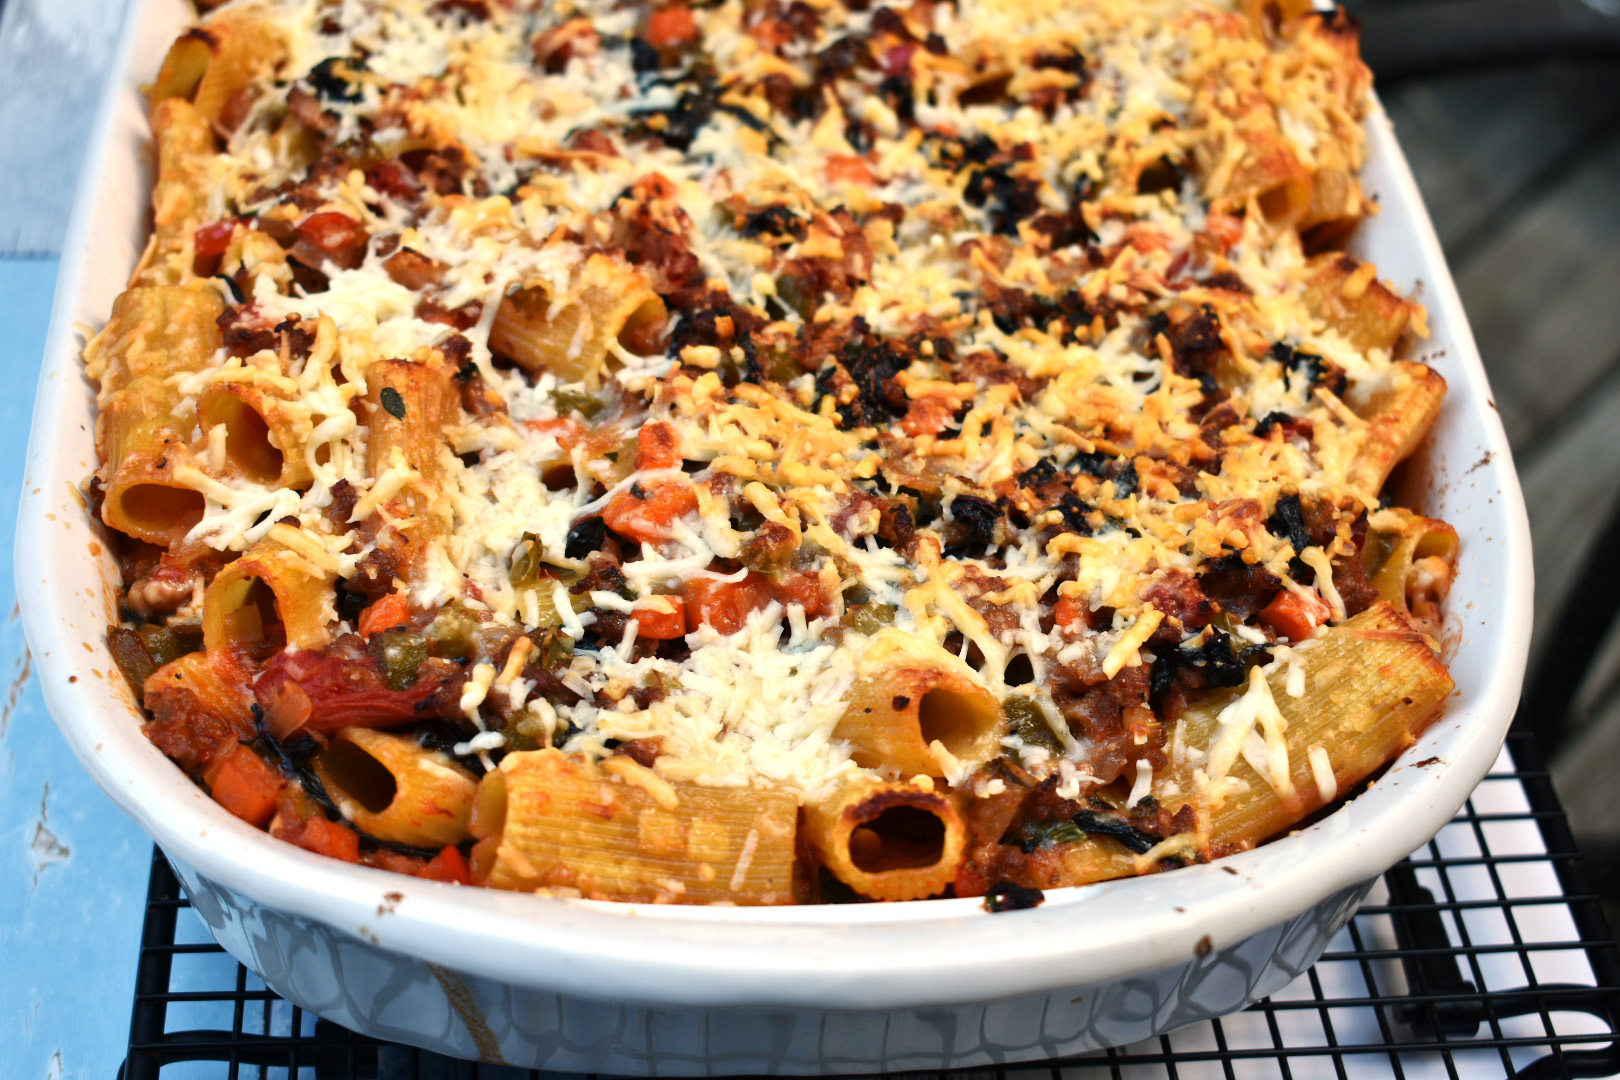 Baked Rigatoni with Sausage and Swiss Chard